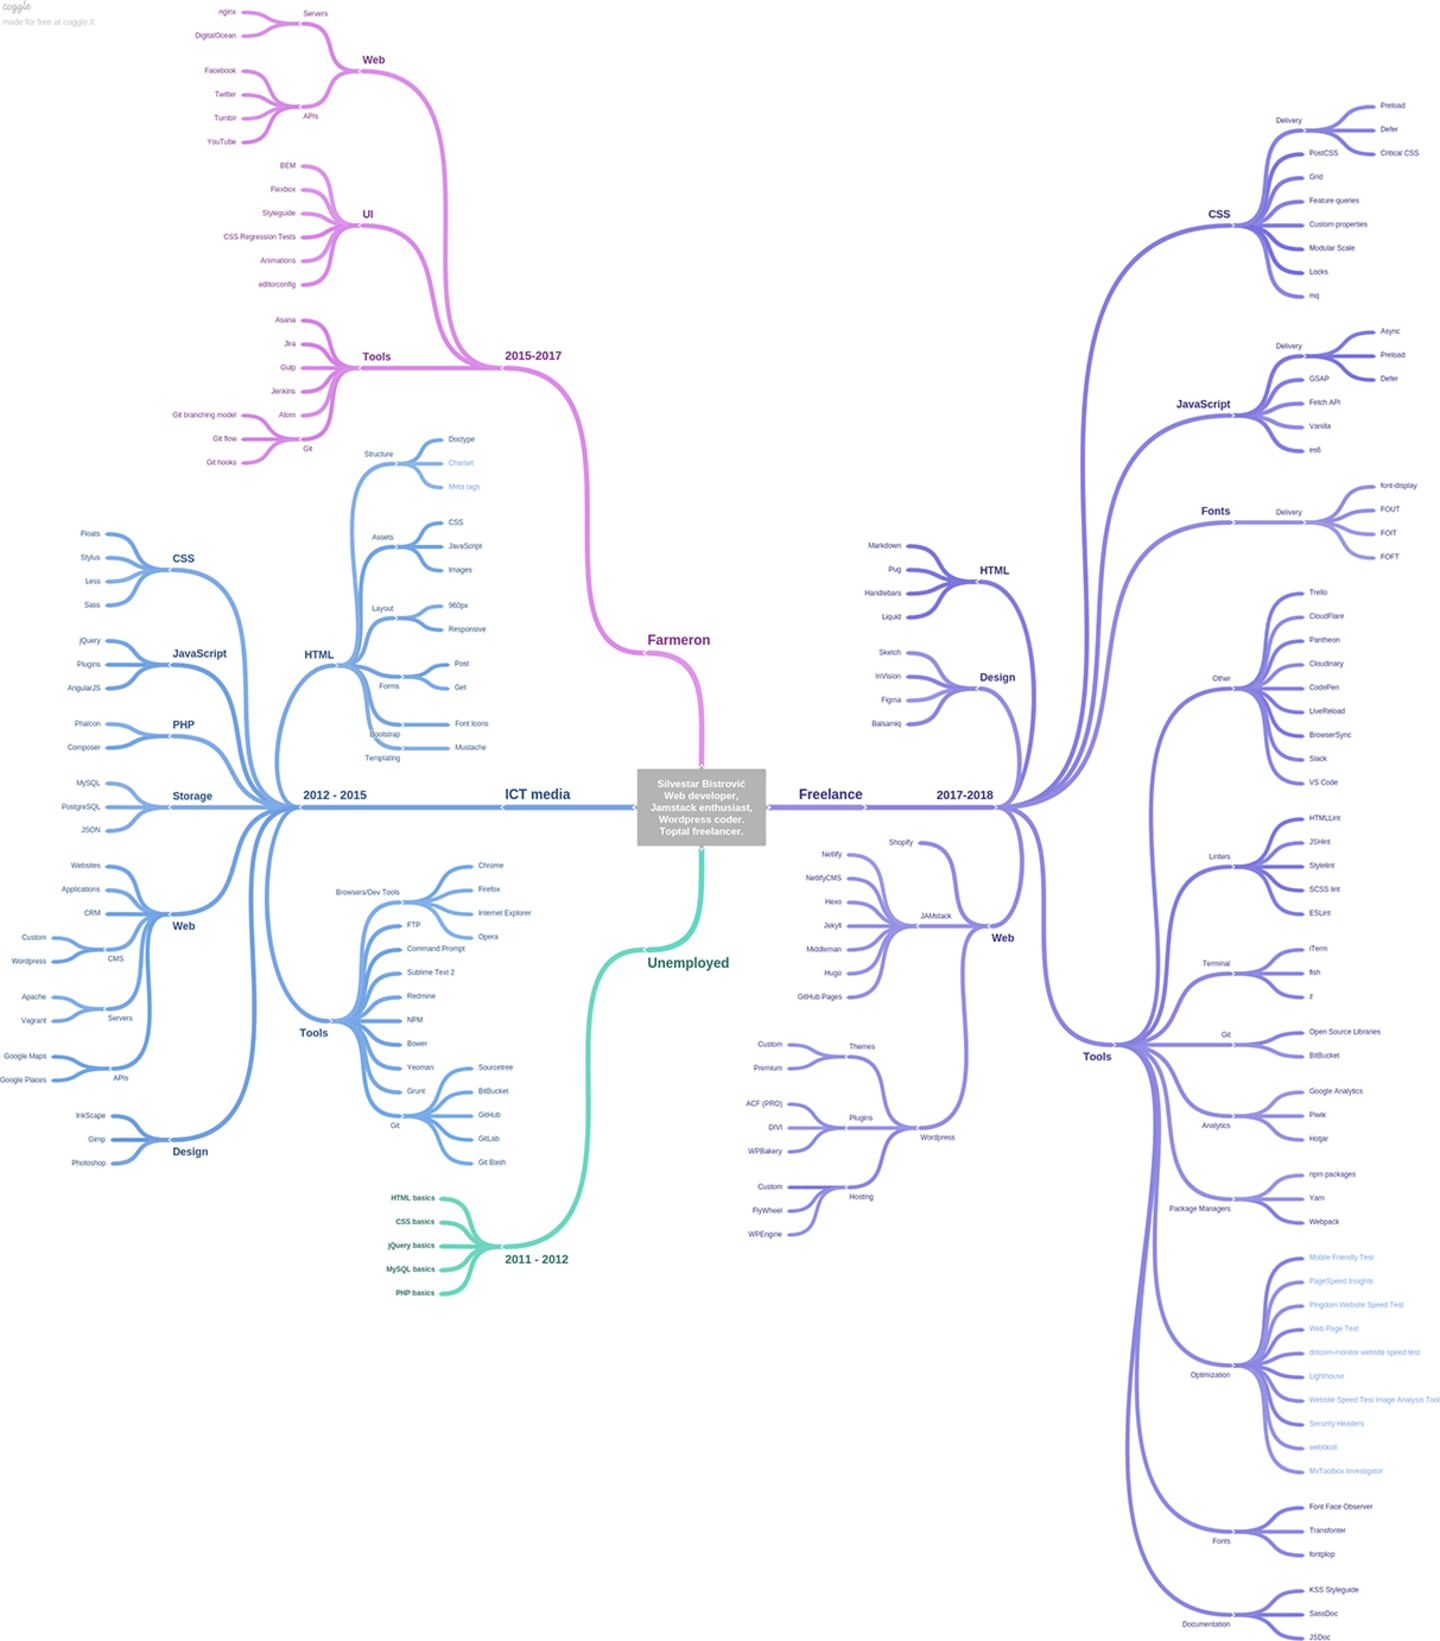 Mindmap containing skills learned as a developer.